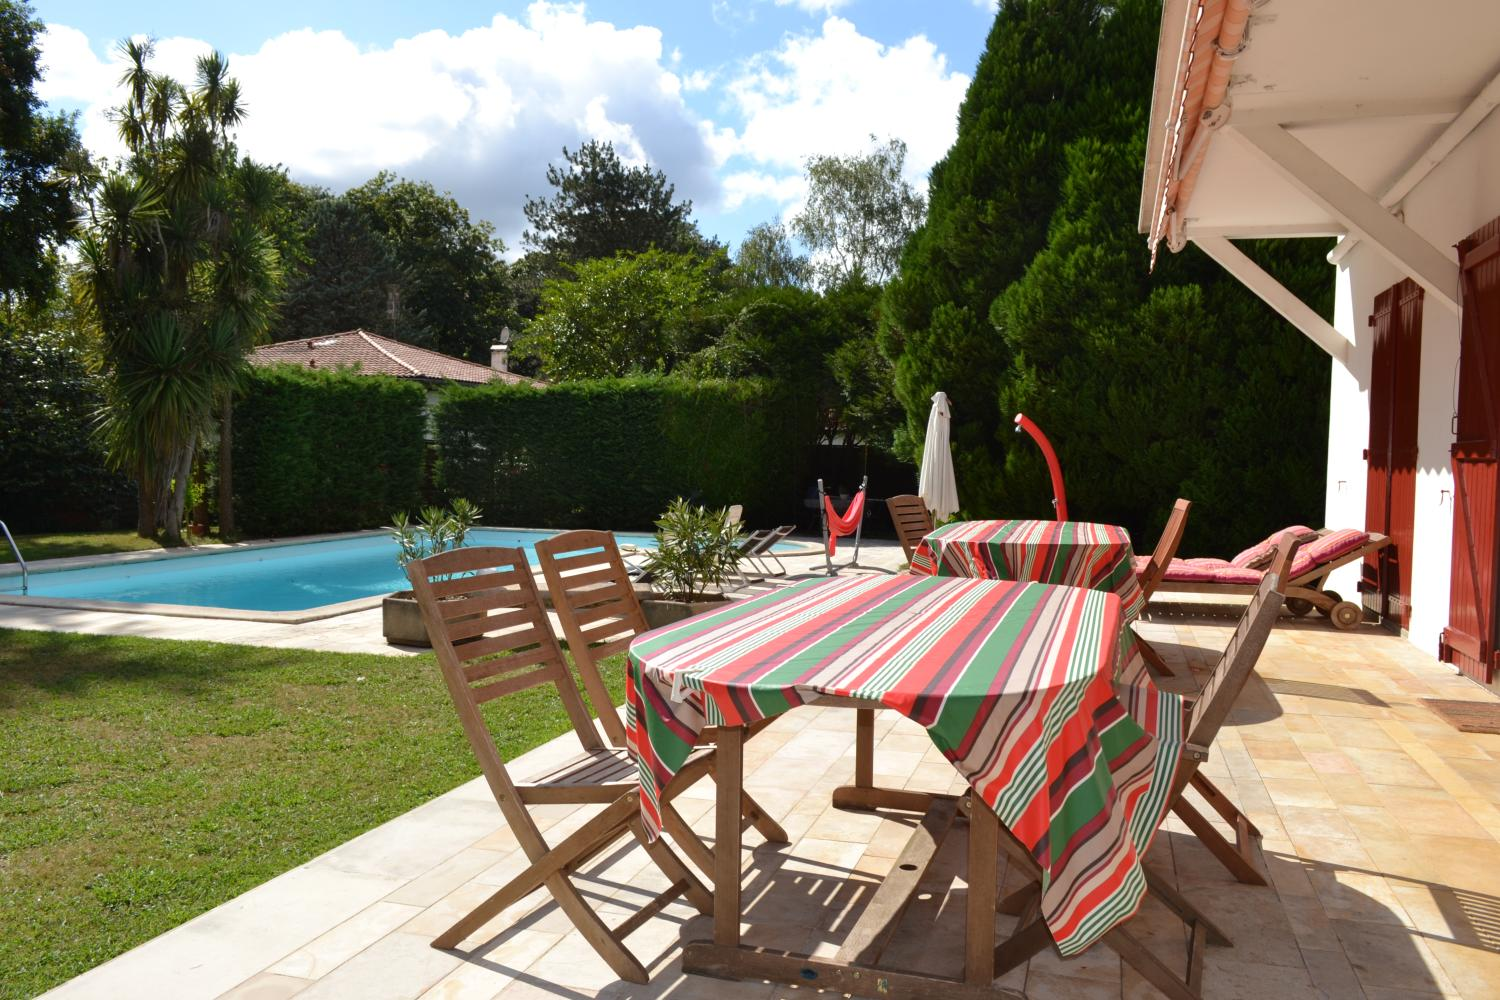 Biarritz family town villa witown villa family BIarritz heated pool